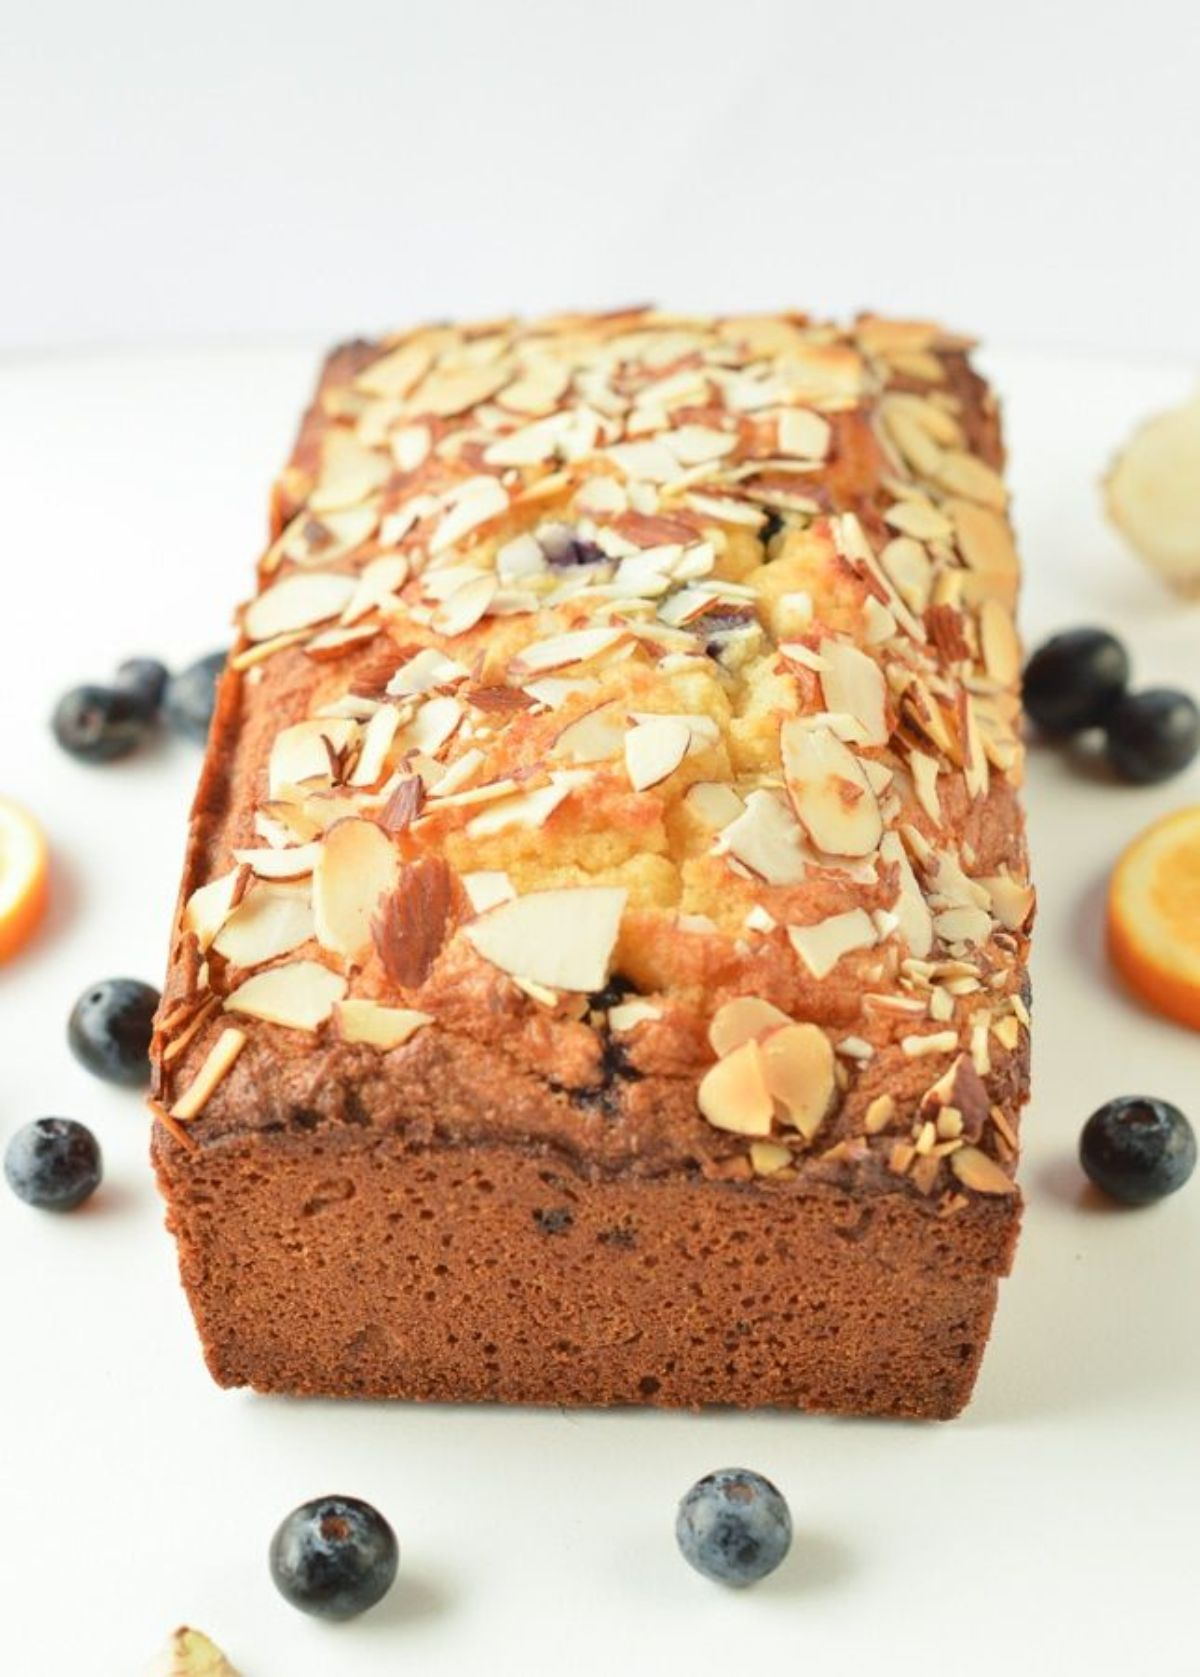 A loaf of blueberry bread topped with sliced almonds and blueberries scattered around it